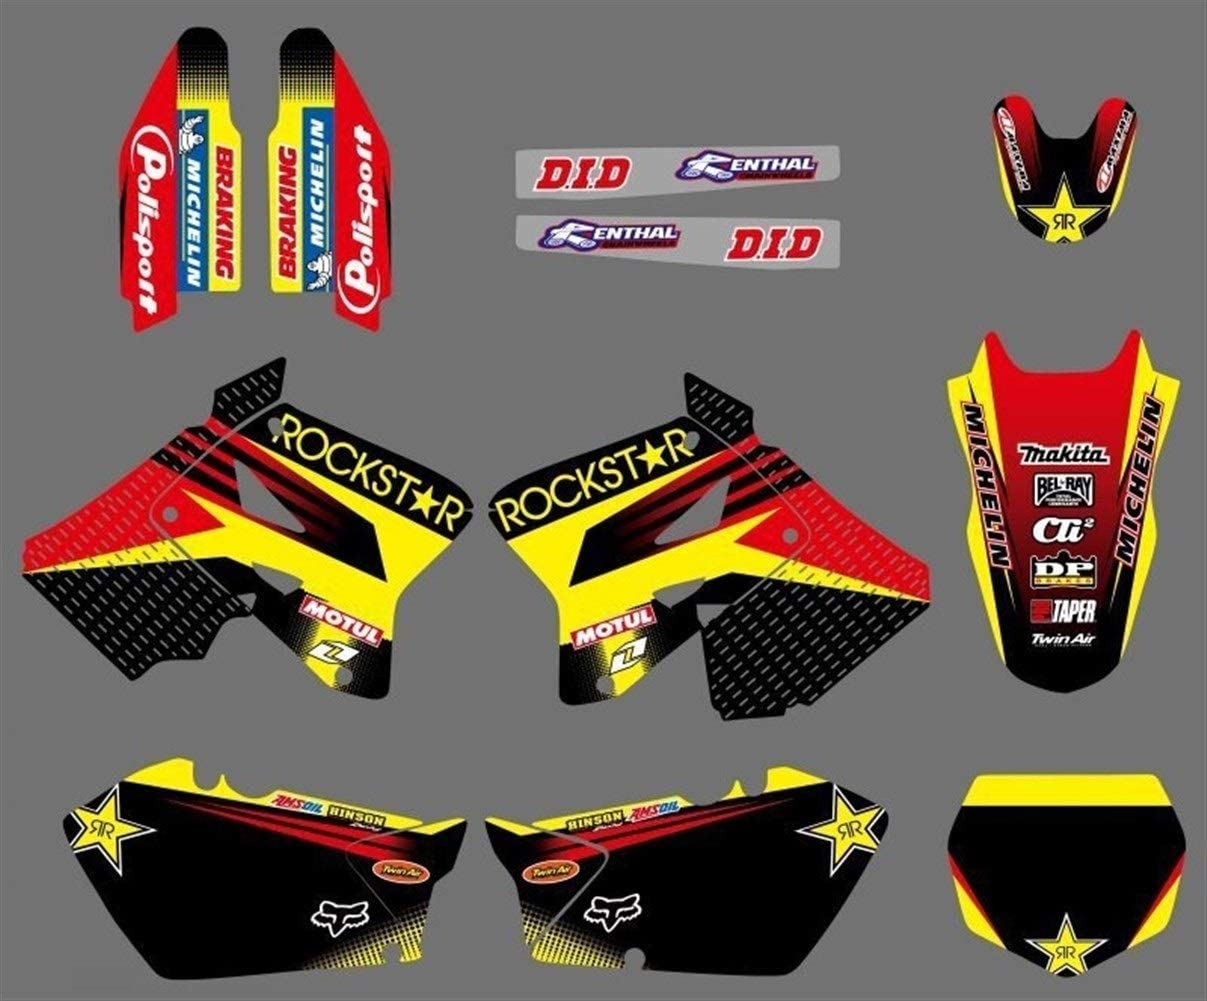 Durable DECALS STICKERS Graphics amp; Backgrounds Kits for Suzuki RM125 RM250 2001 02 03 04 05 06 07 08 09 10 2011 2012 RM 125 250 Chic